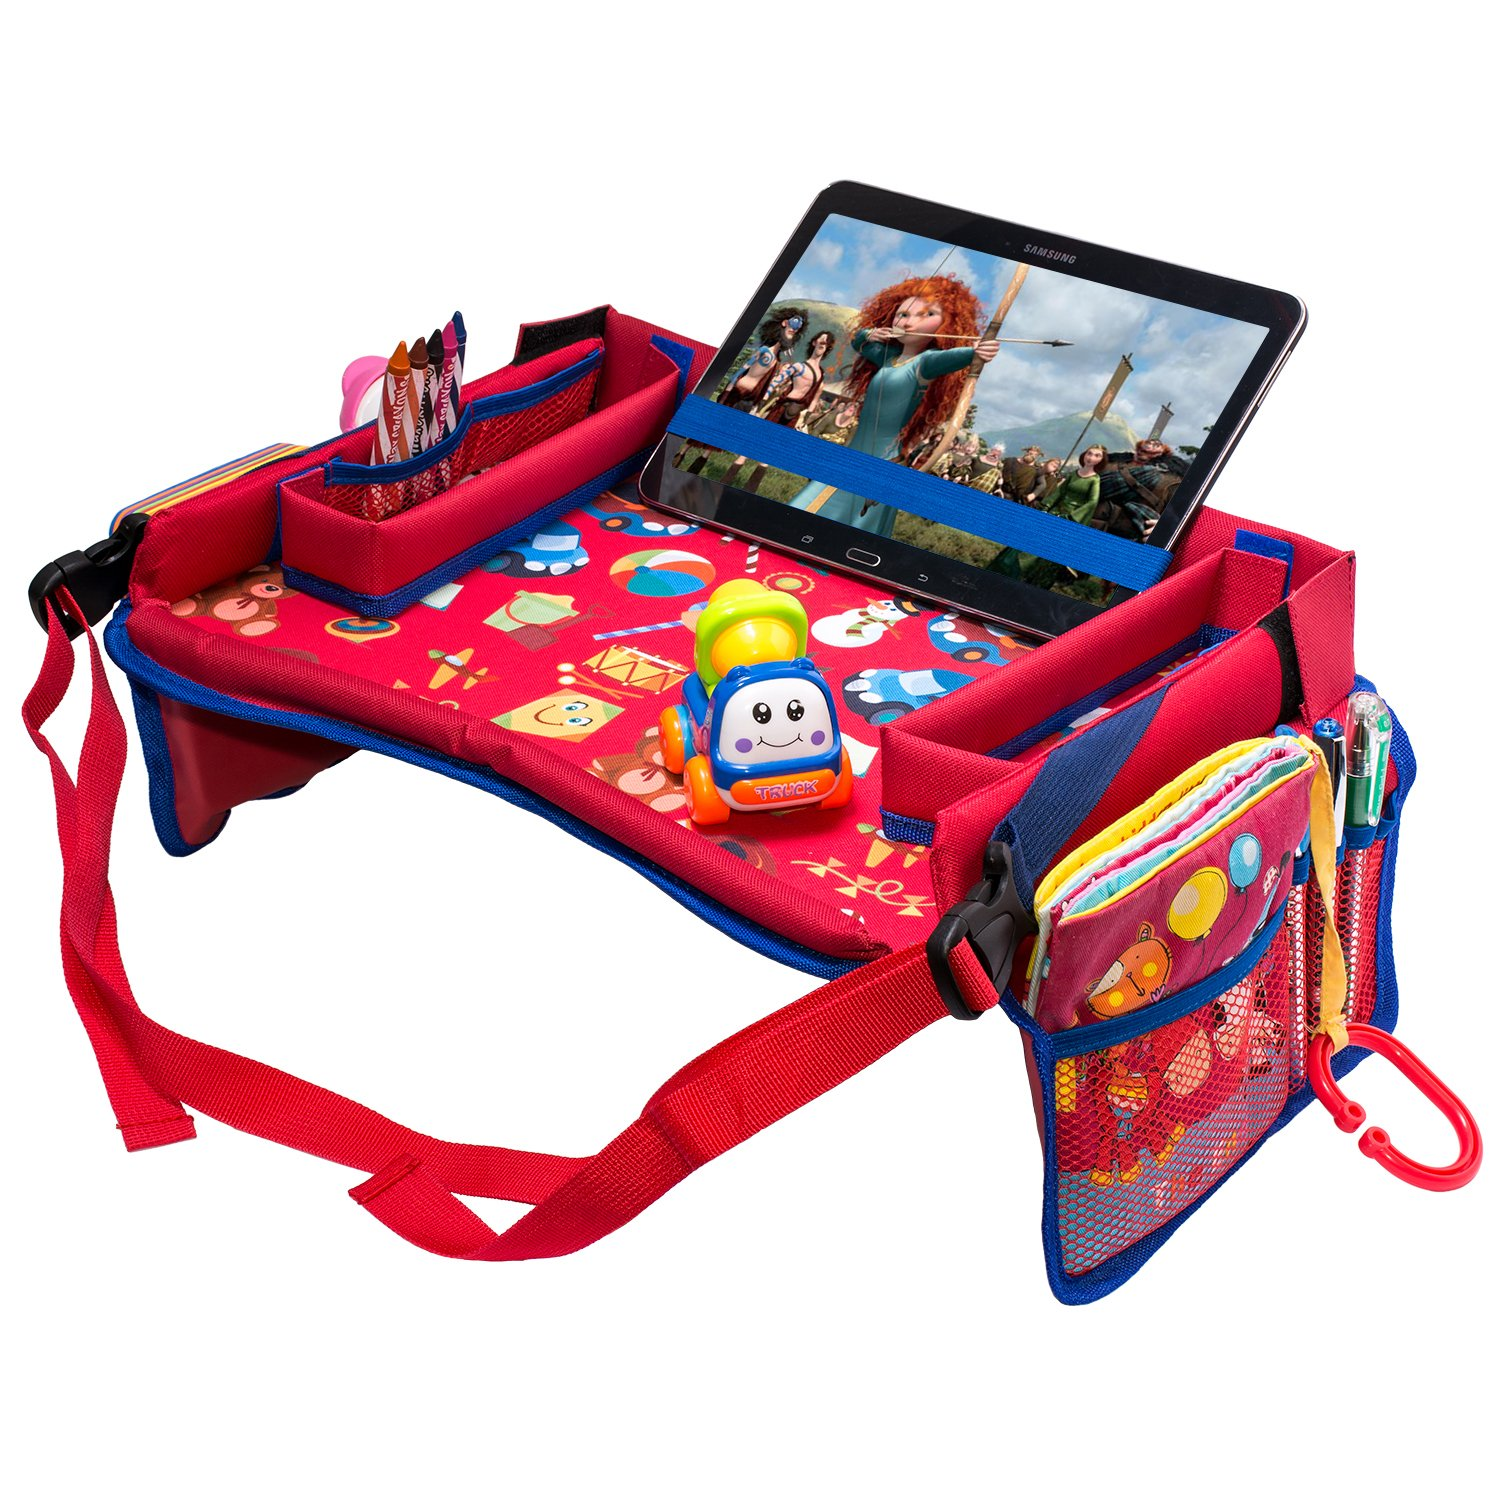 DMoose Toddler Car Seat Travel Tray Strong Buckles Mesh Pockets Reinforced Surface Waterproof Sturdy Base /& Side Walls 16 x 14 Tablet Holder Toy Organizer Crayon Organizer